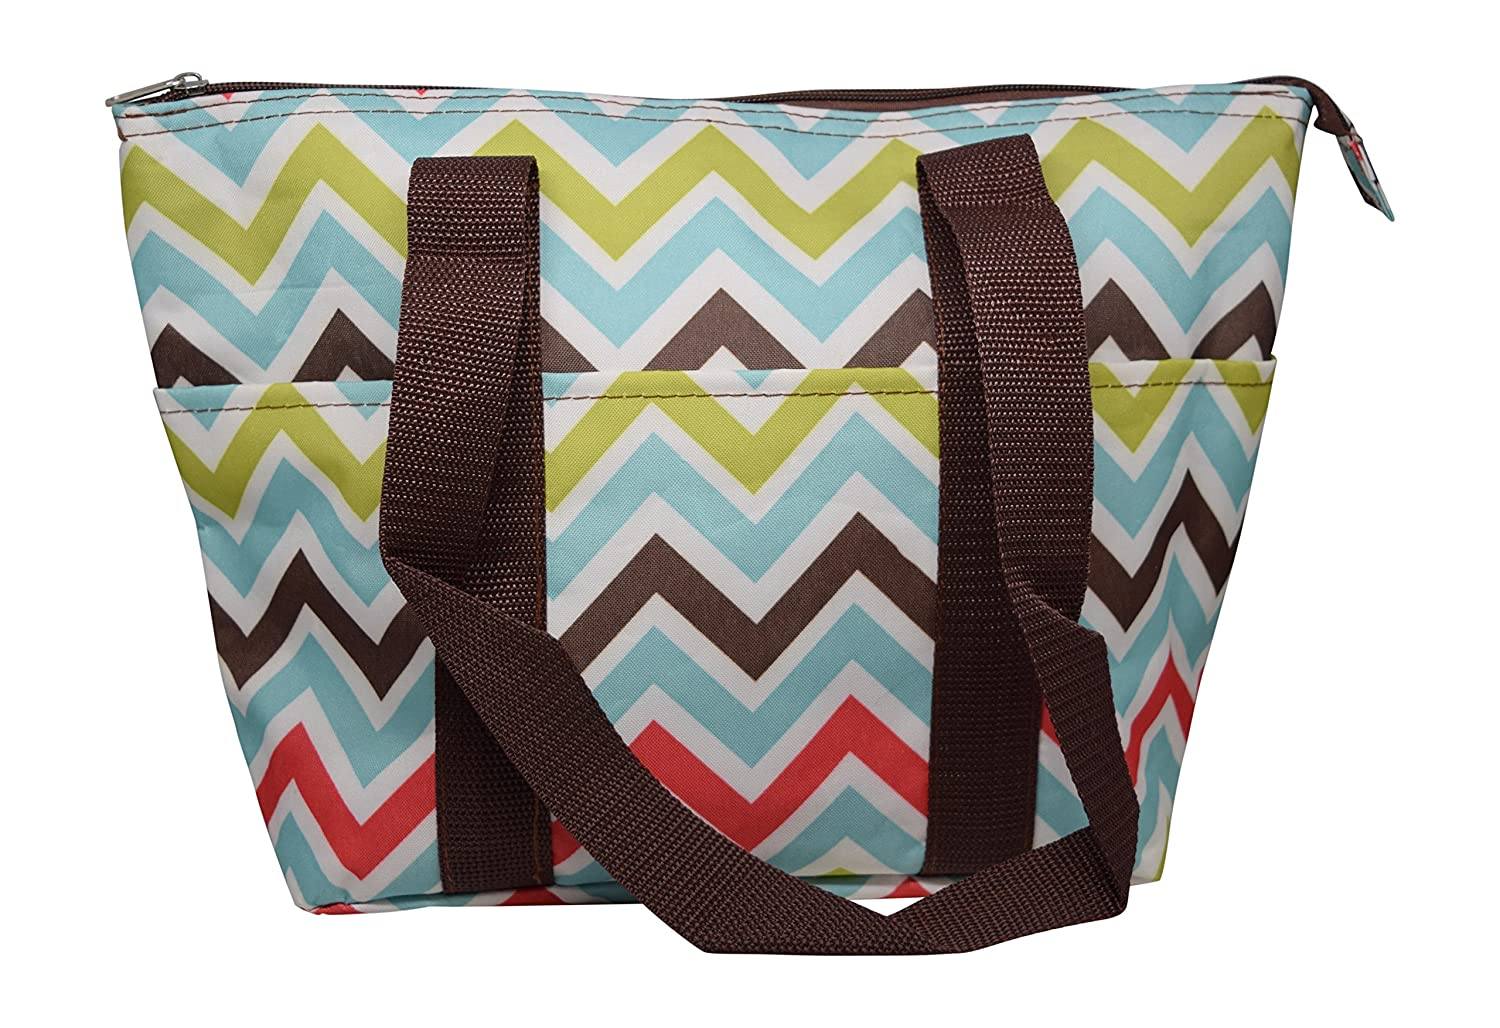 15 in long large再利用可能なファスナー付きTop Insulated Lunchバッグ B01M0A021D Multicolor Chevron Multicolor Chevron